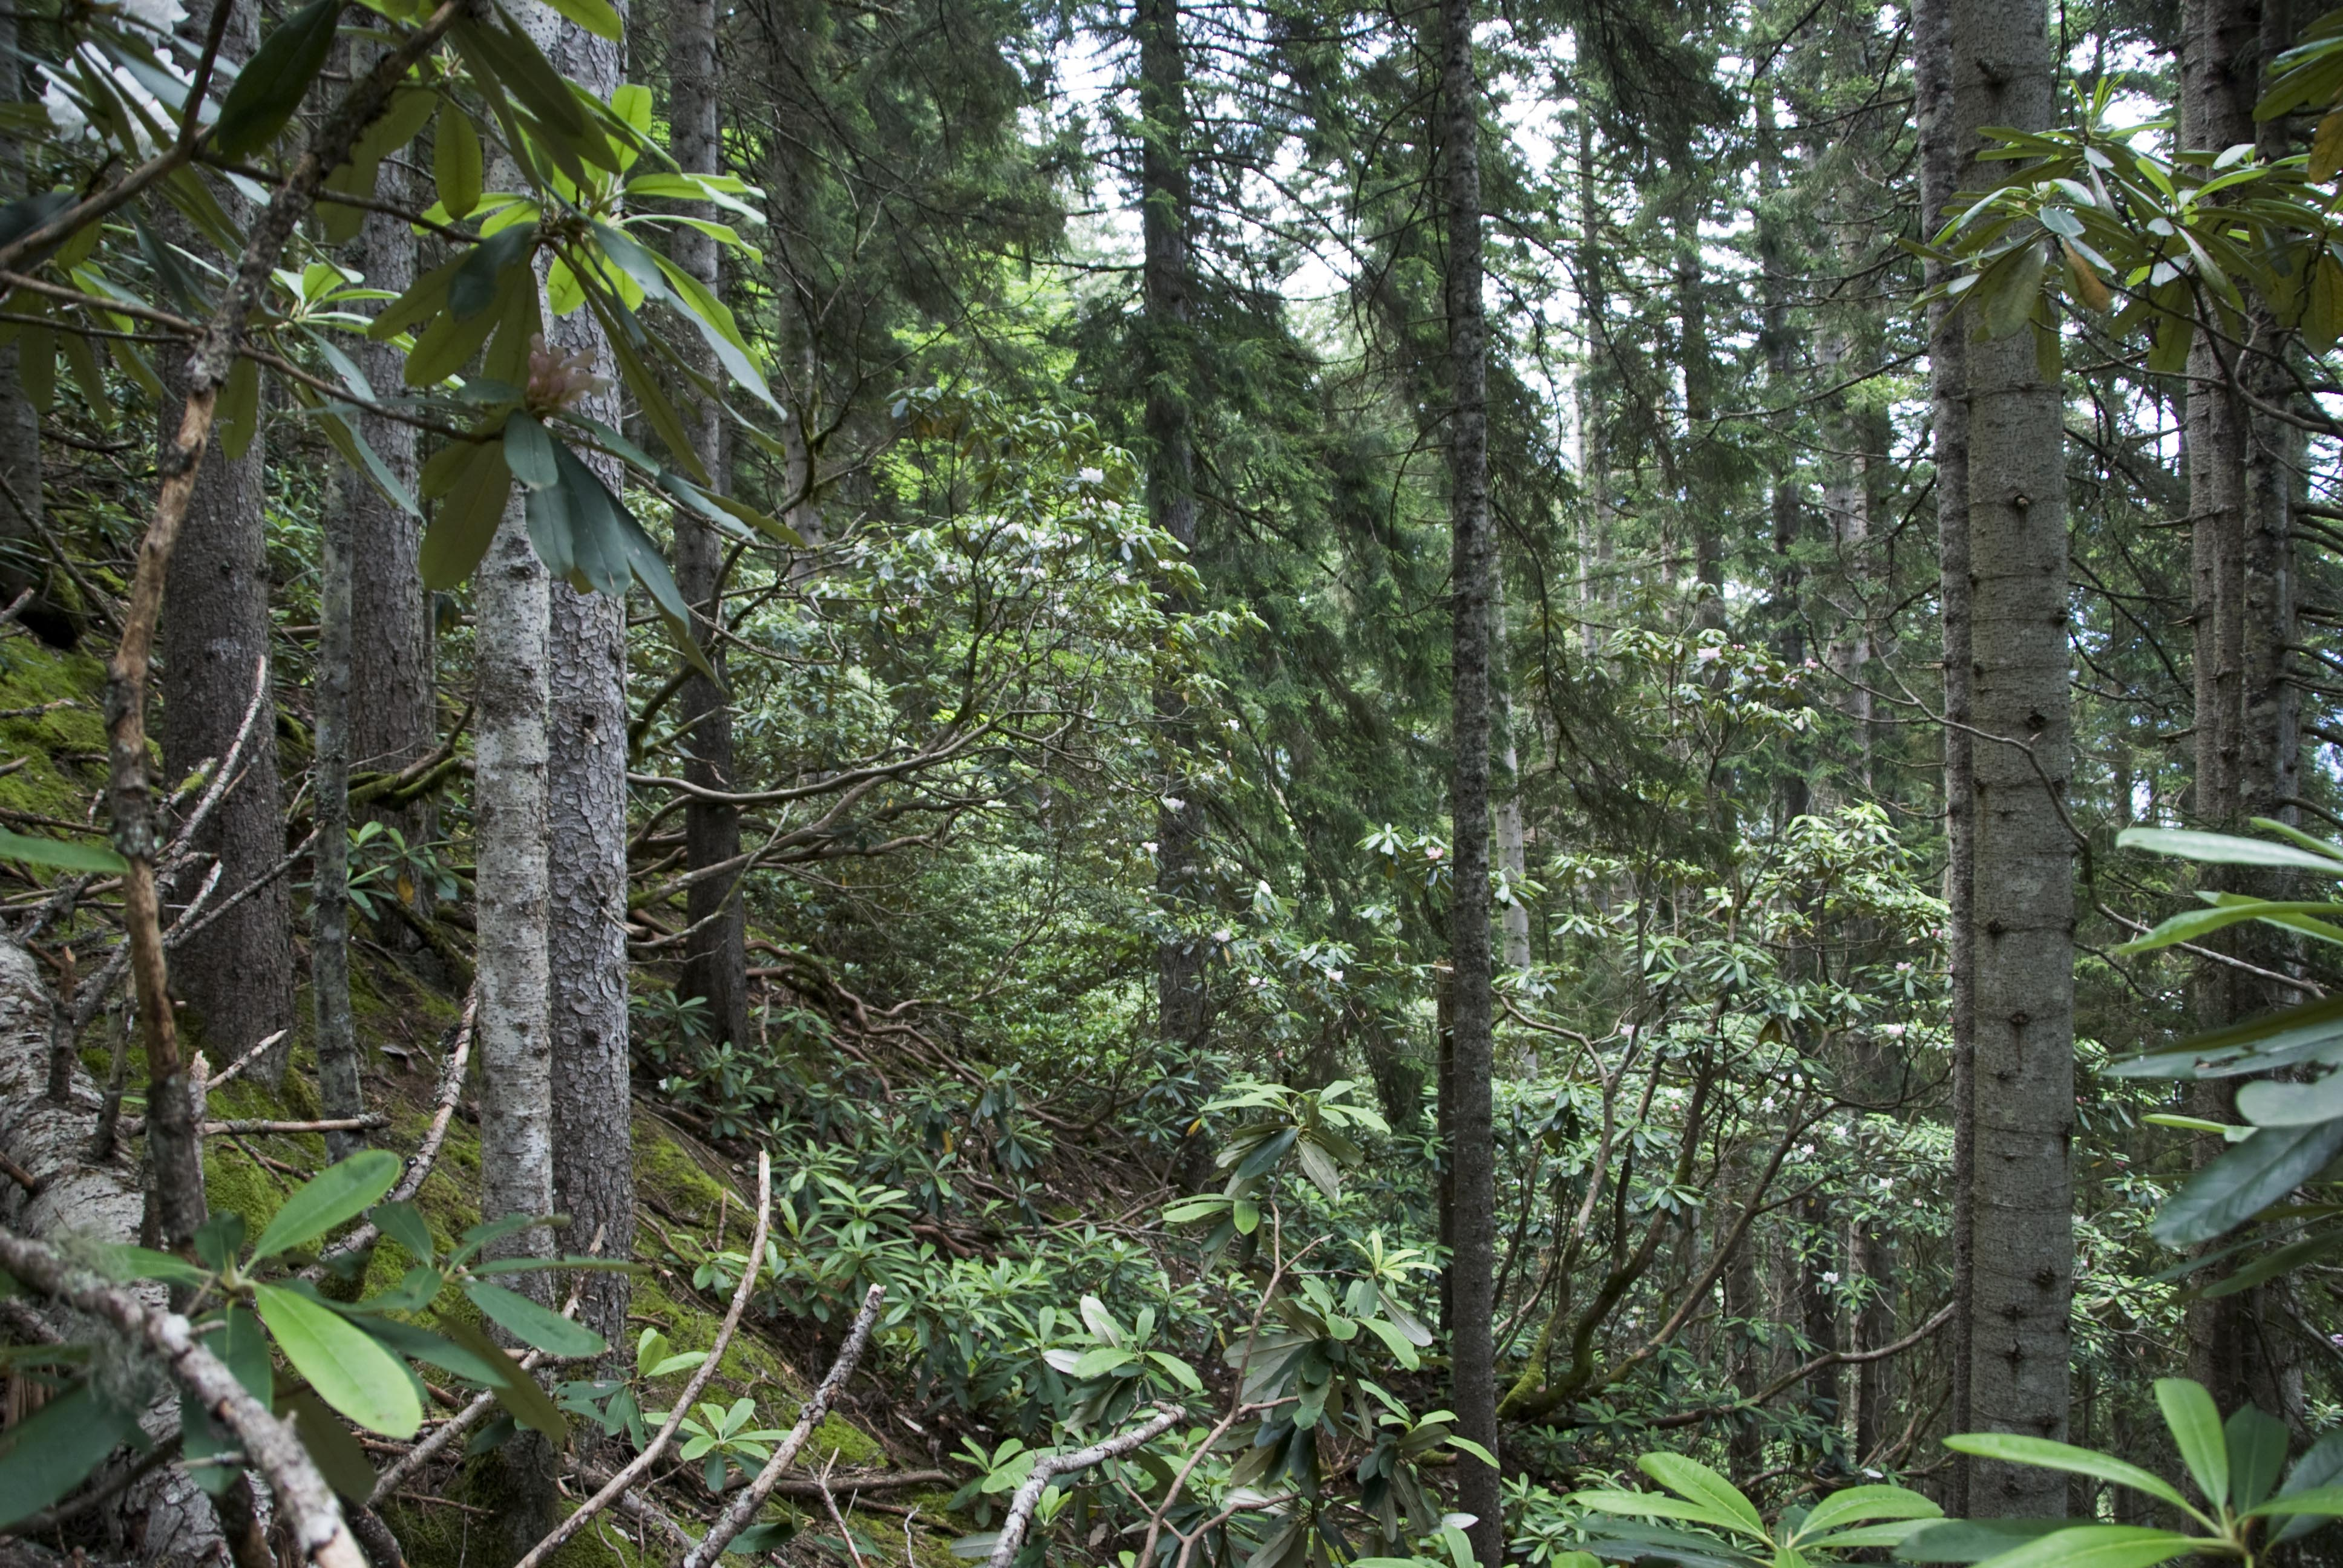 They comprise both hard and soft wood trees like oak, Ecology Of The Colchic Temperate Rainforest Dario Martin Benito